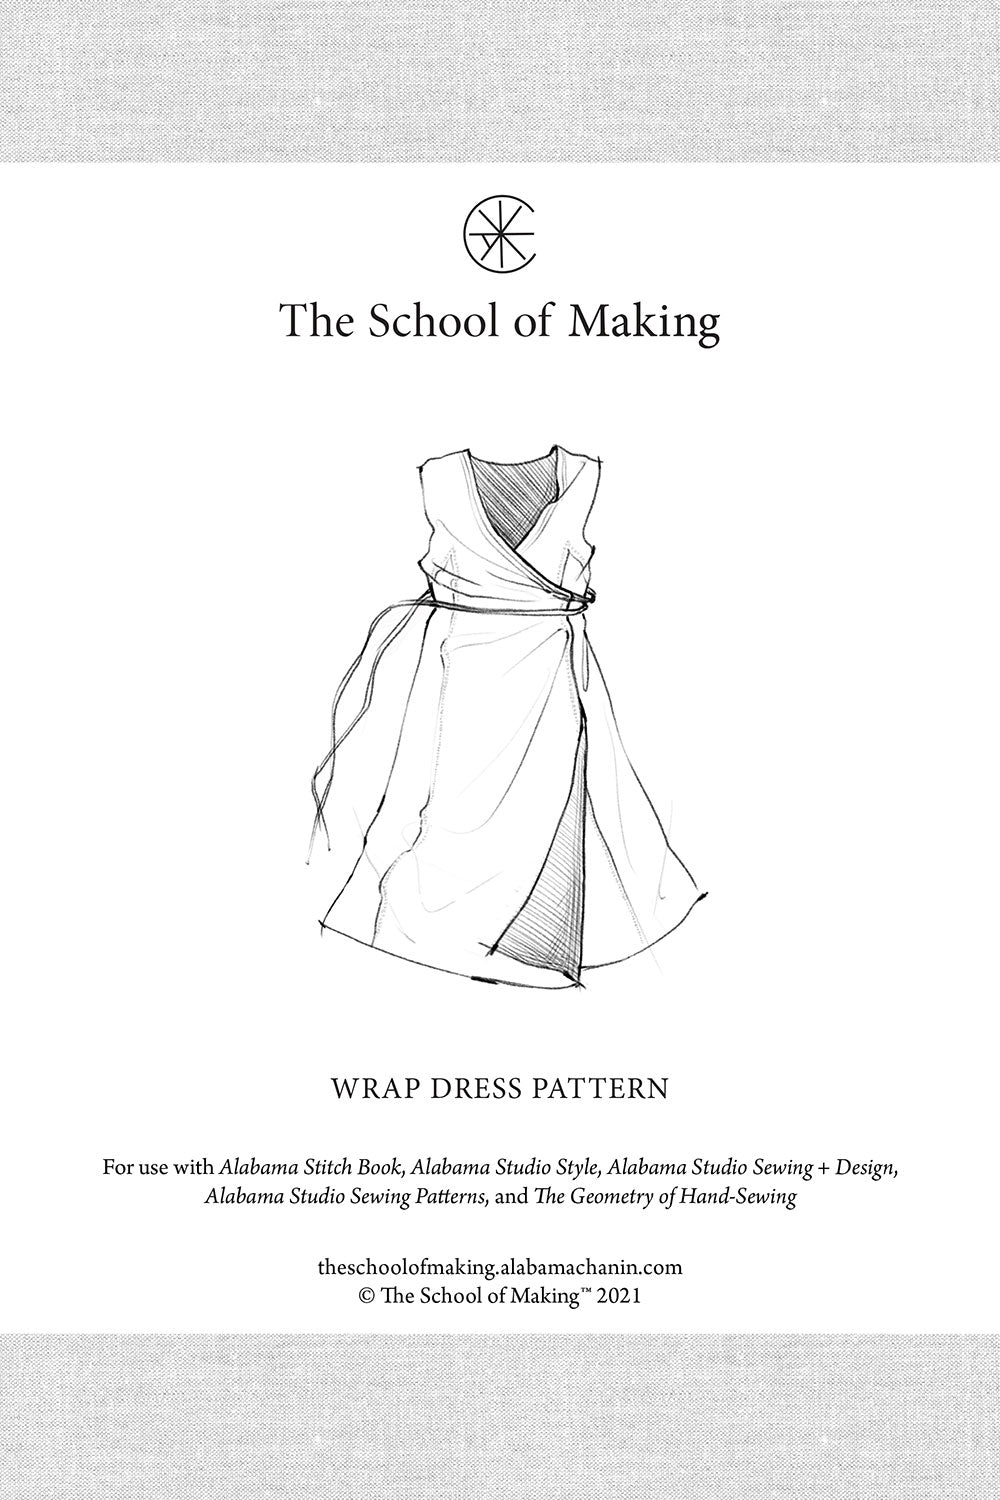 The School of Making The Wrap Dress Pattern Maker Supplies